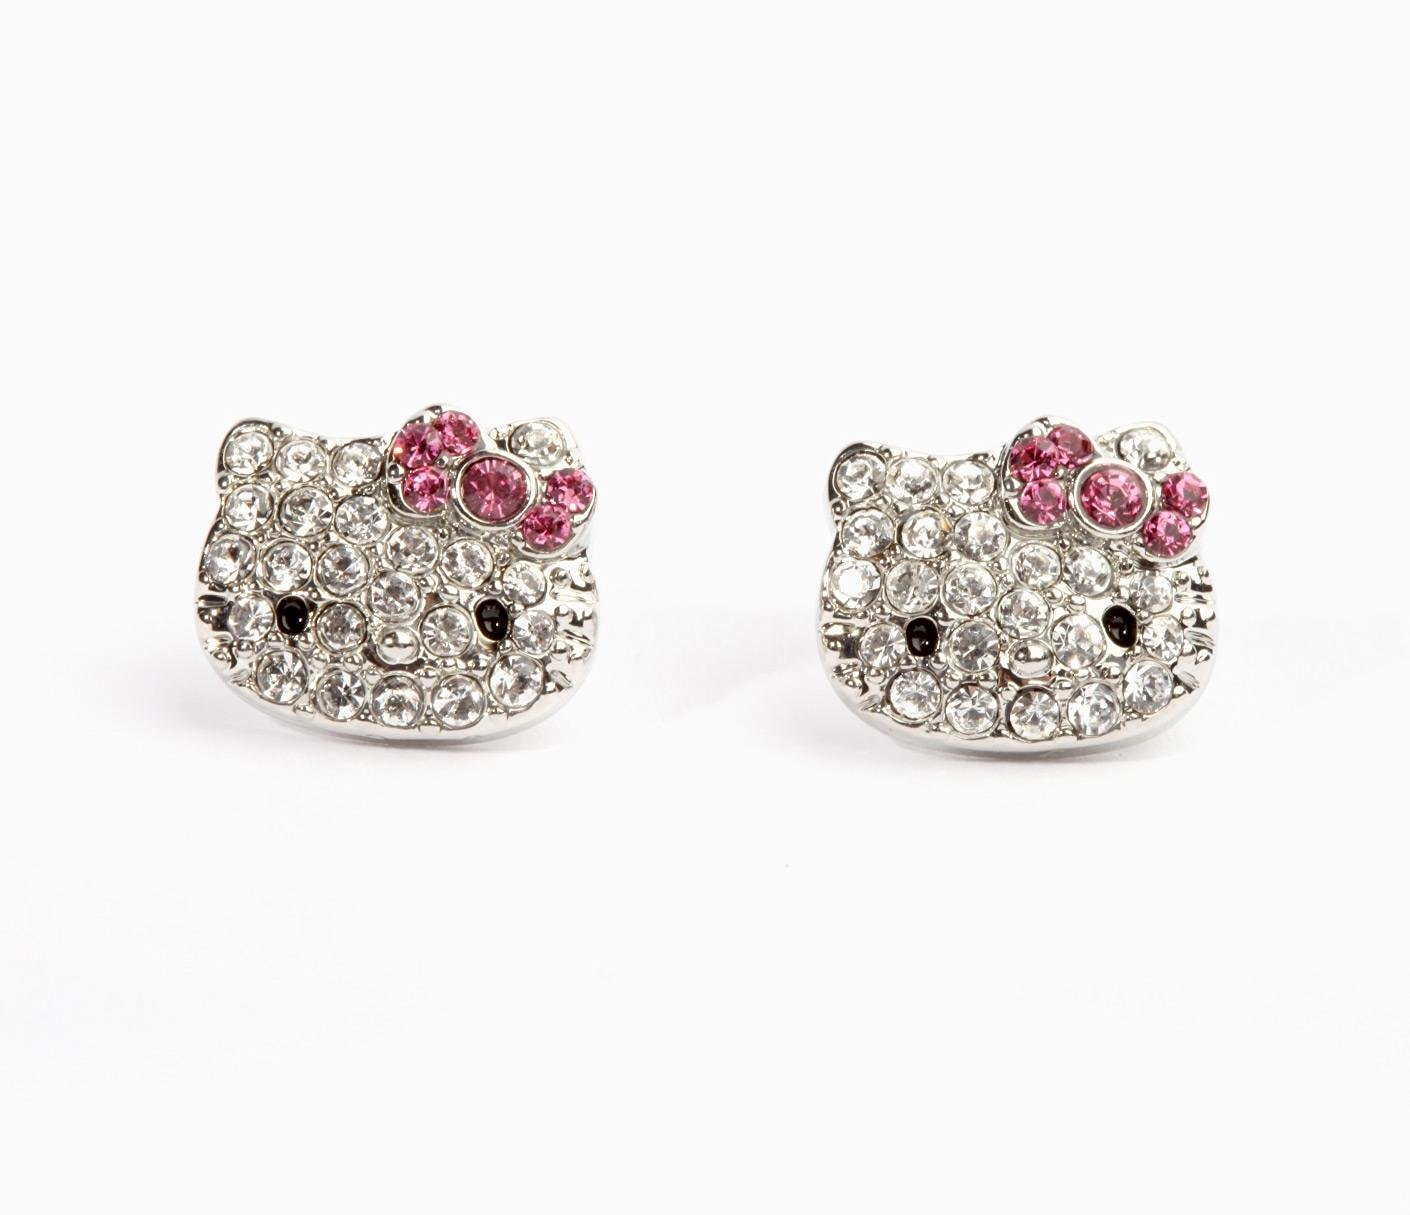 Cheap Hello Kitty Earrings, find Hello Kitty Earrings deals on ...